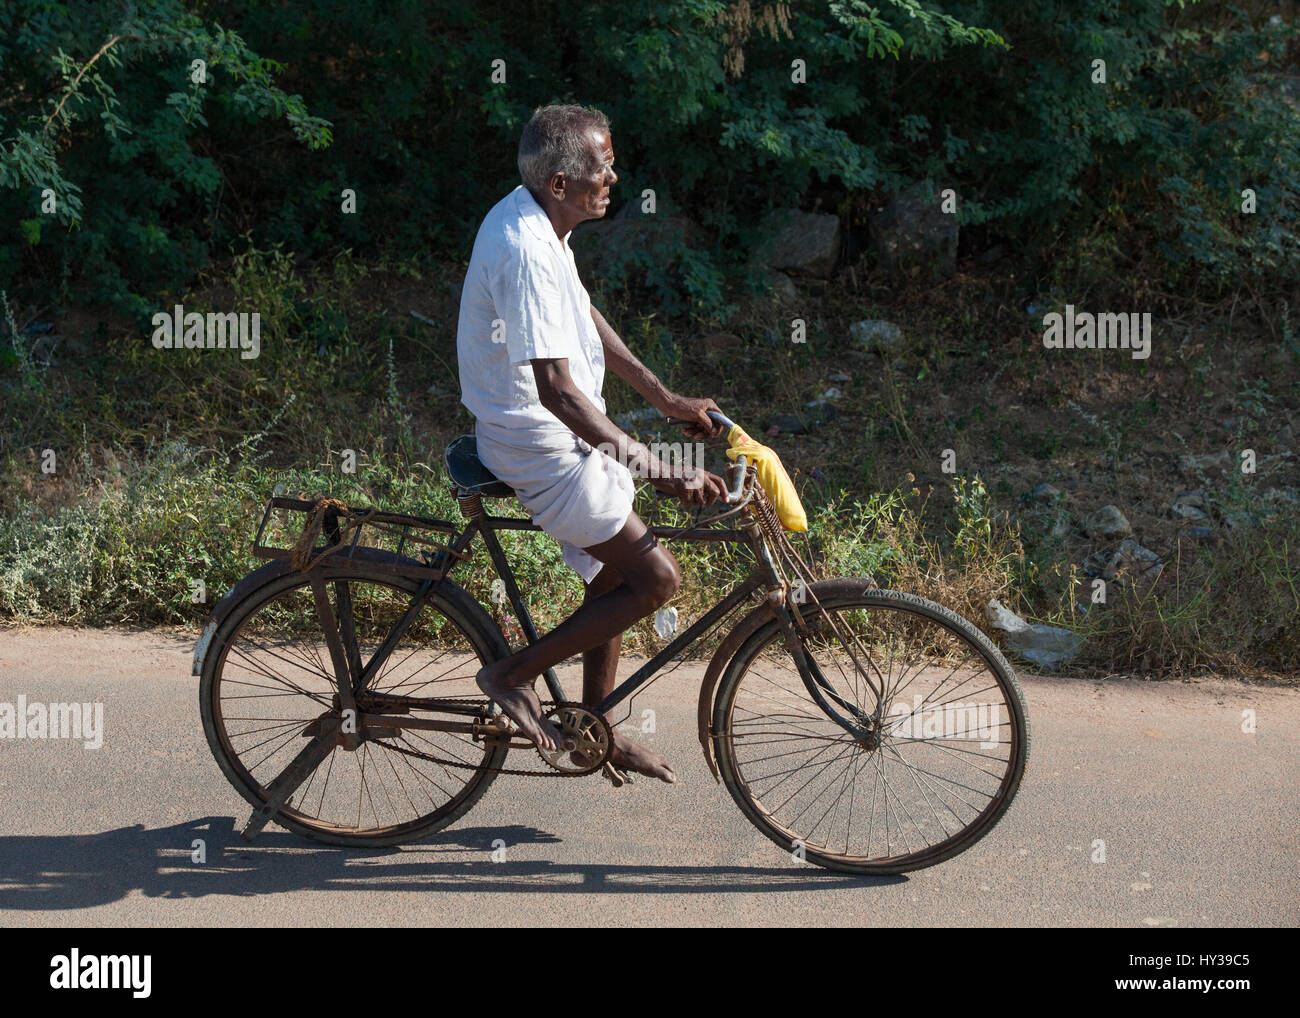 Old Indian Bicycle High Resolution Stock Photography and Images - Alamy